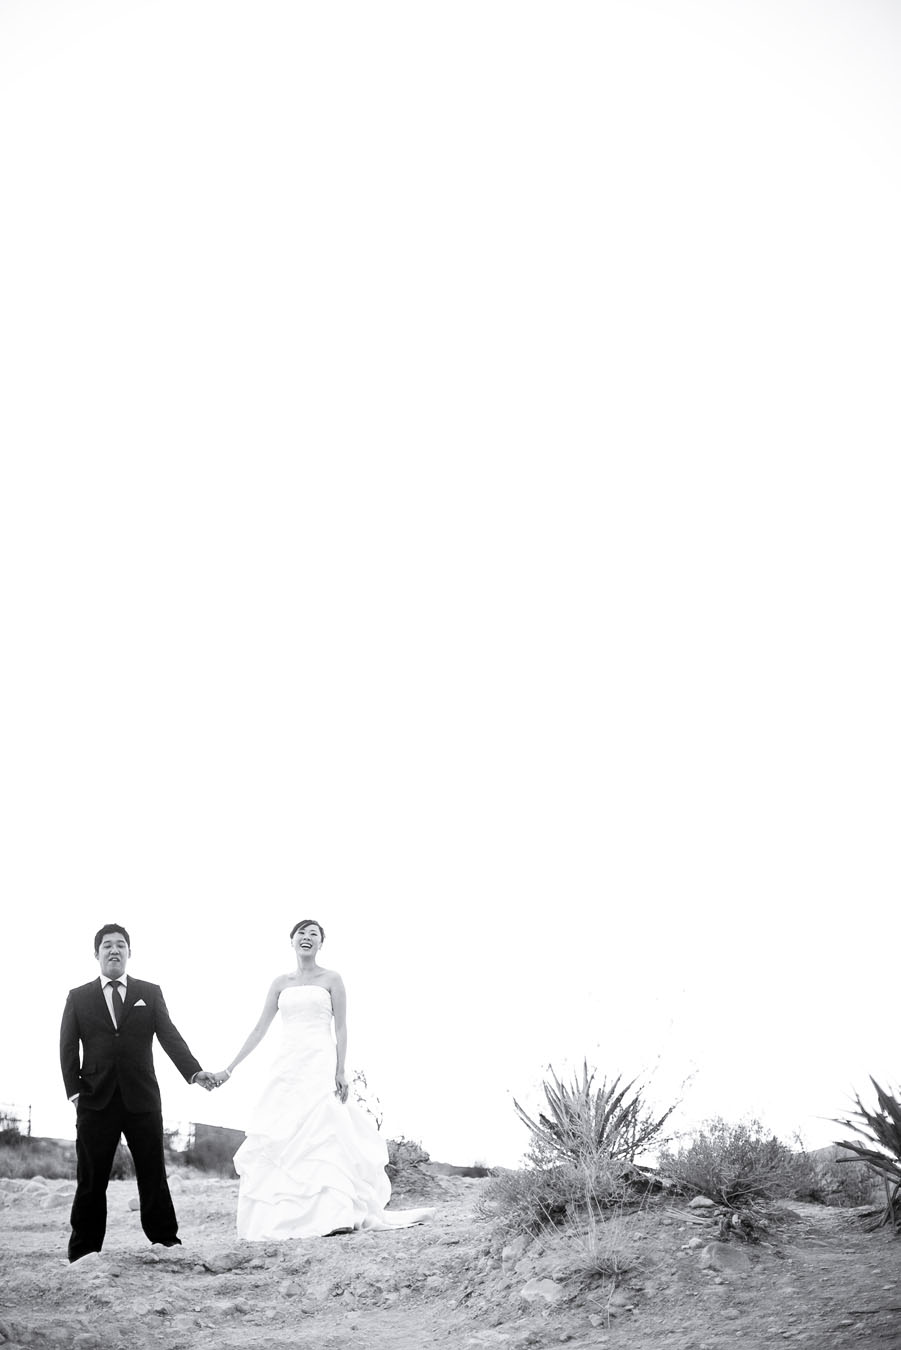 night time outdoor wedding photos at red rock canyon in las vegas by destination wedding photographer table4 weddings